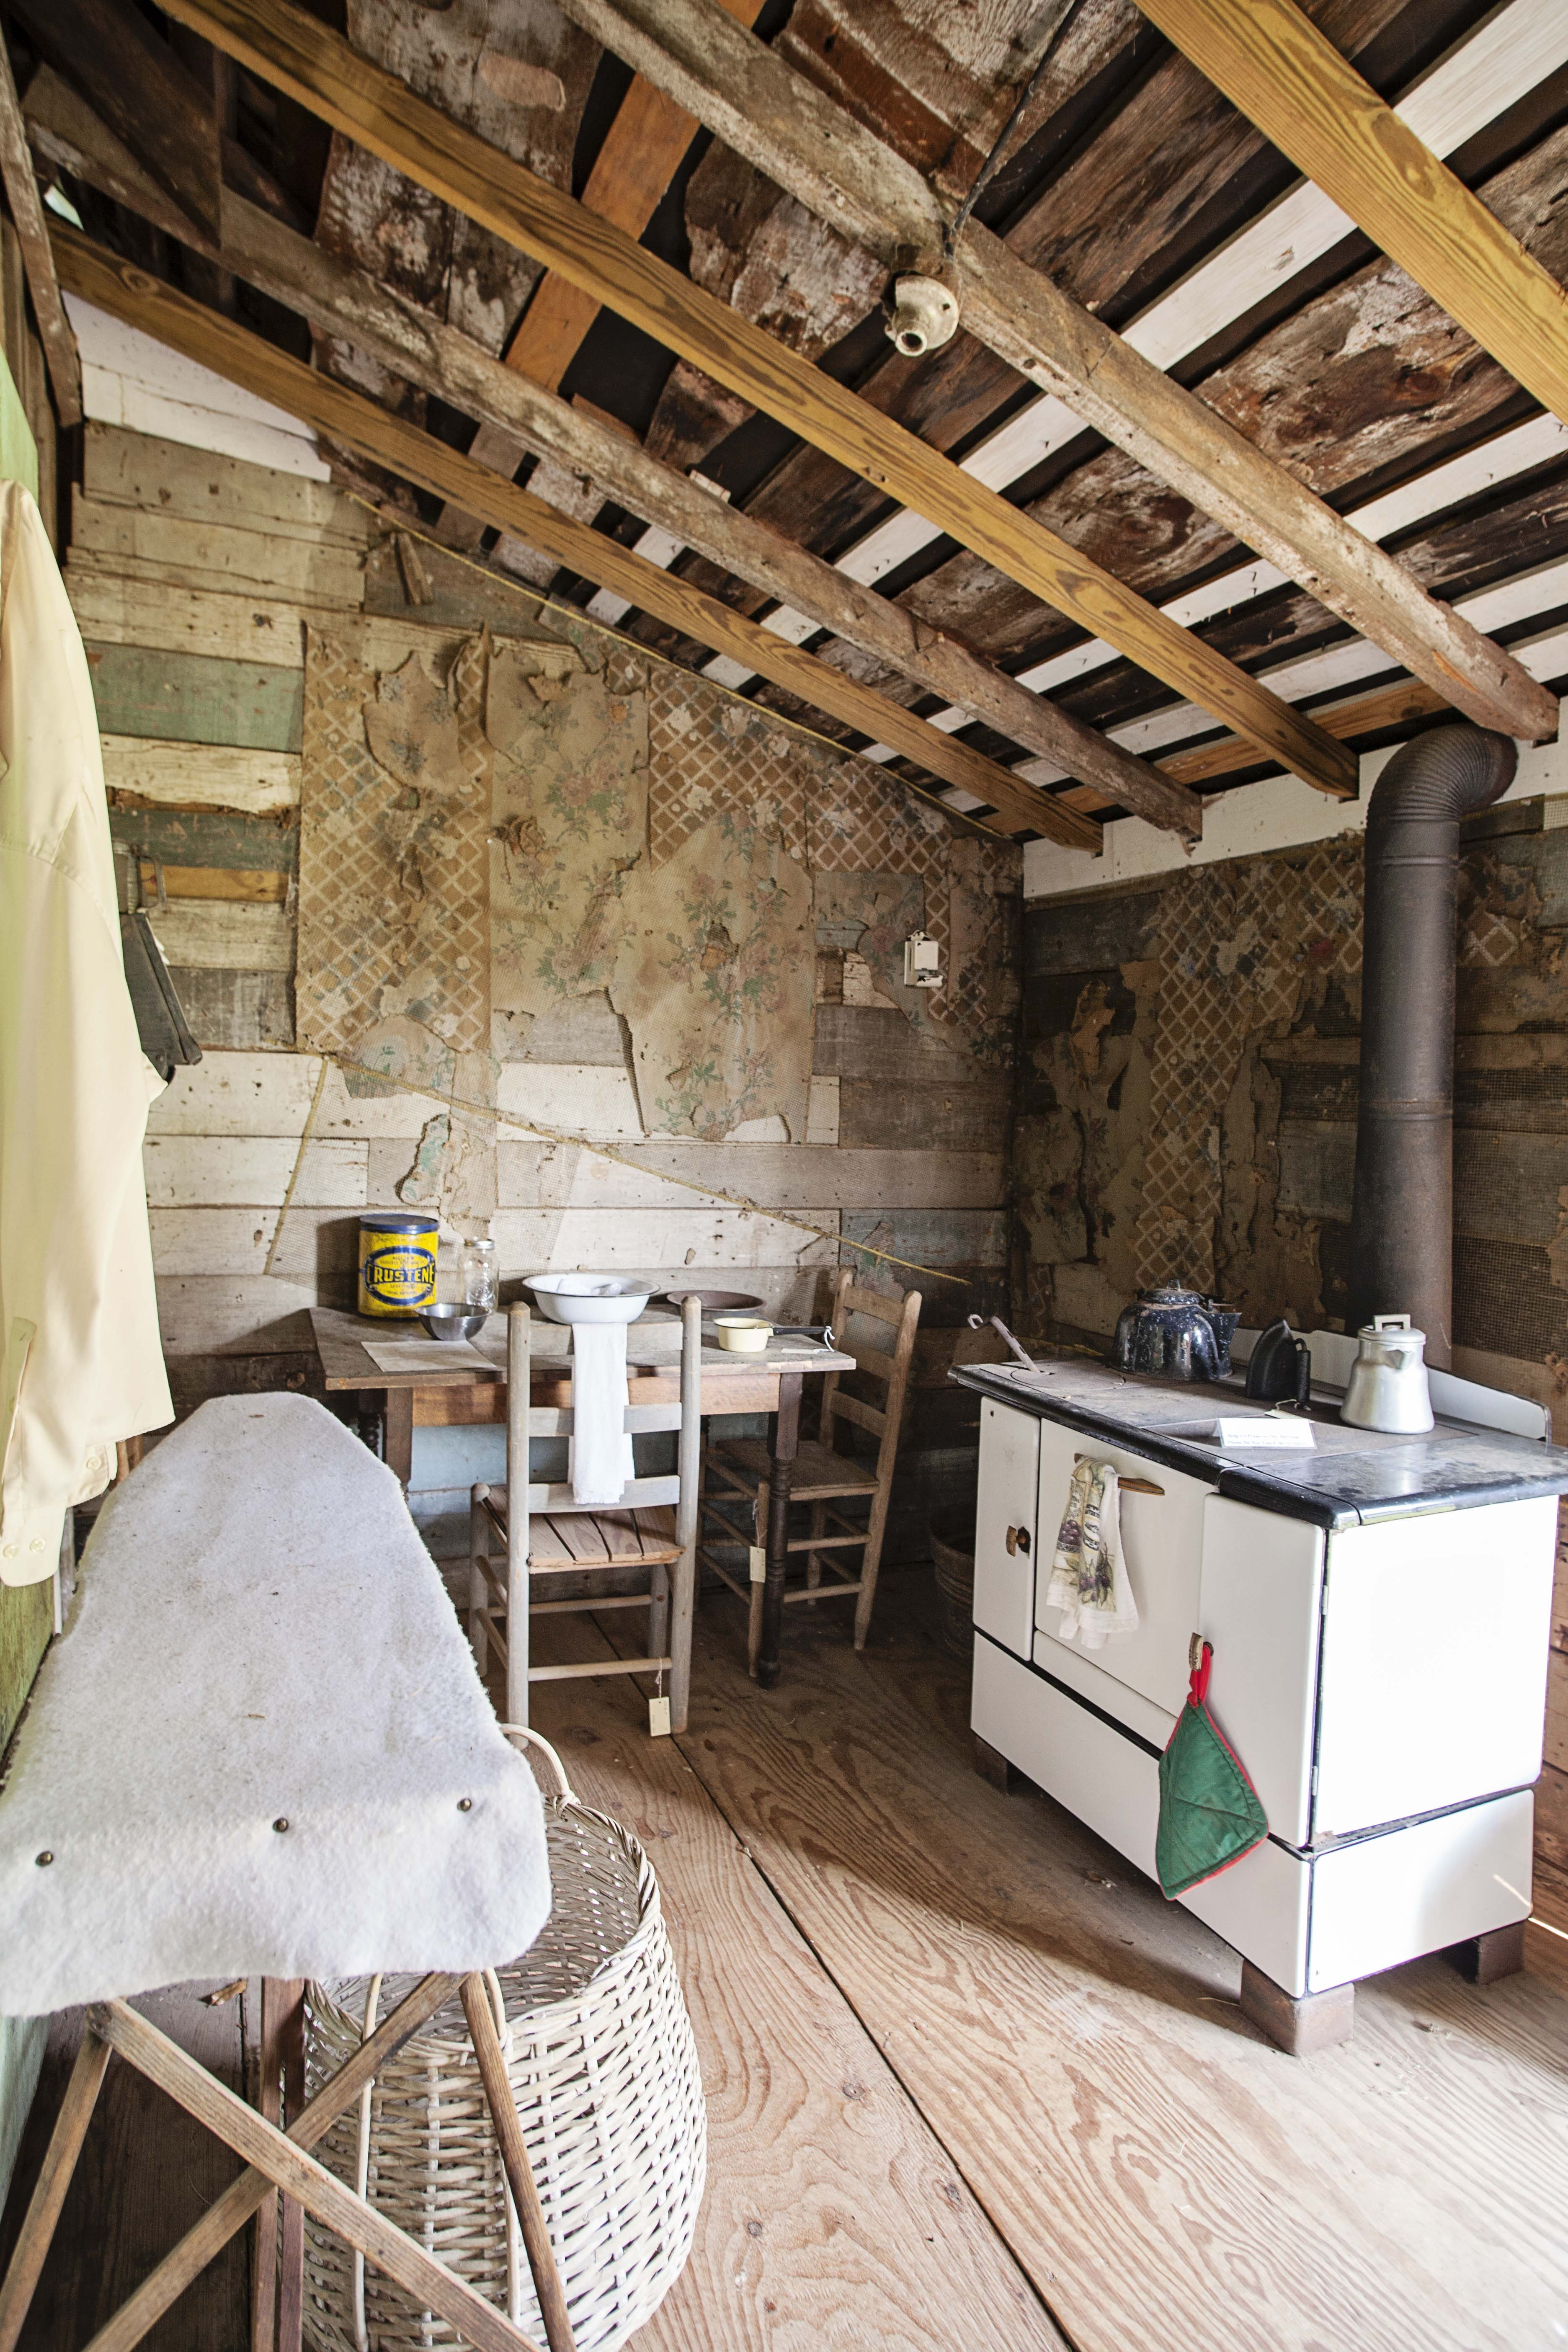 Small cabin porch that was enclosed to add an additional room. Serving as a kitchen with a stove, small table with chairs and an ironing board.